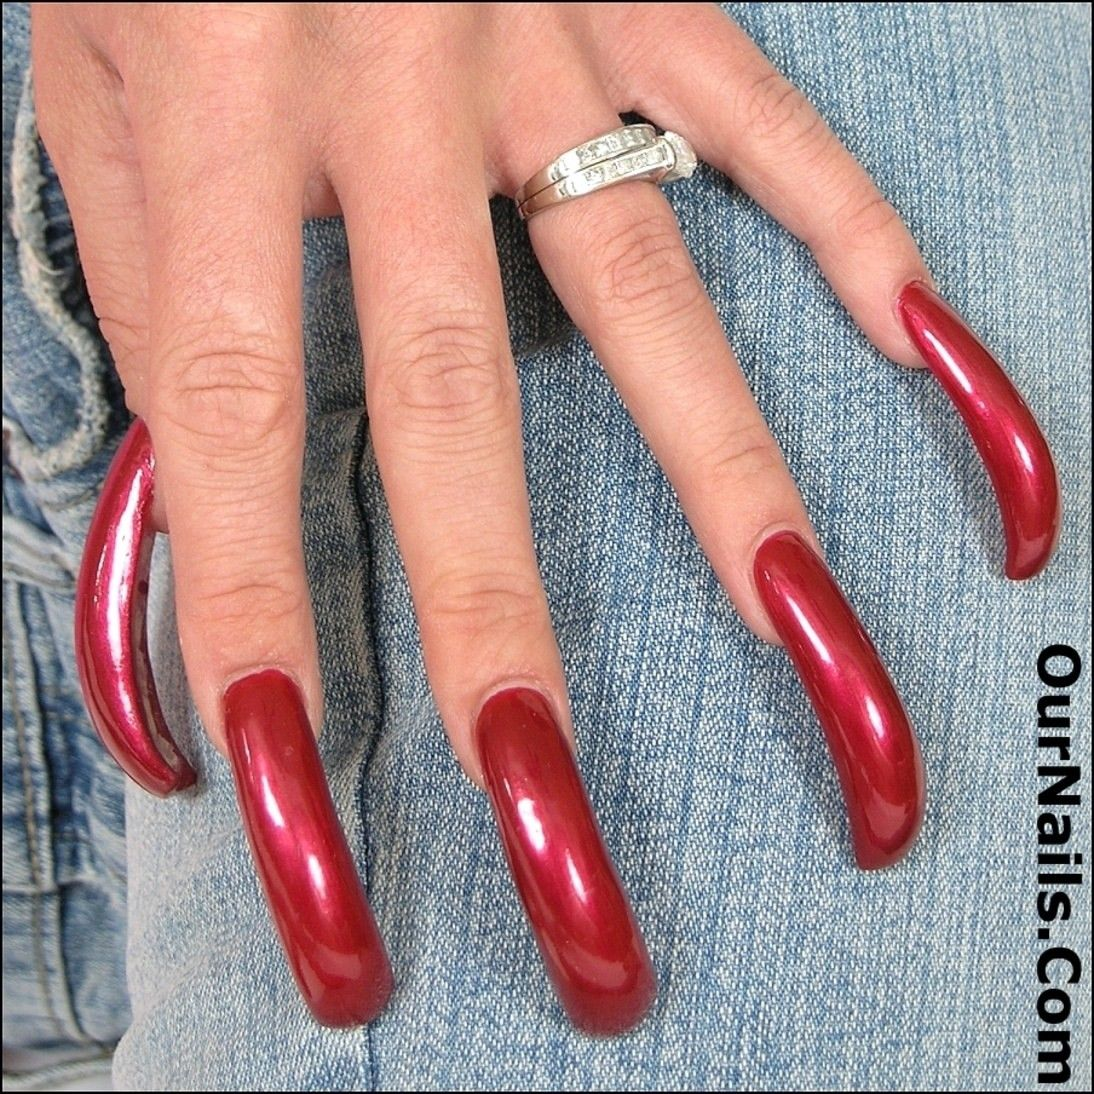 Pin By Keith Bowman On Ournails Com Red Acrylic Nails Pretty Acrylic Nails Curved Nails